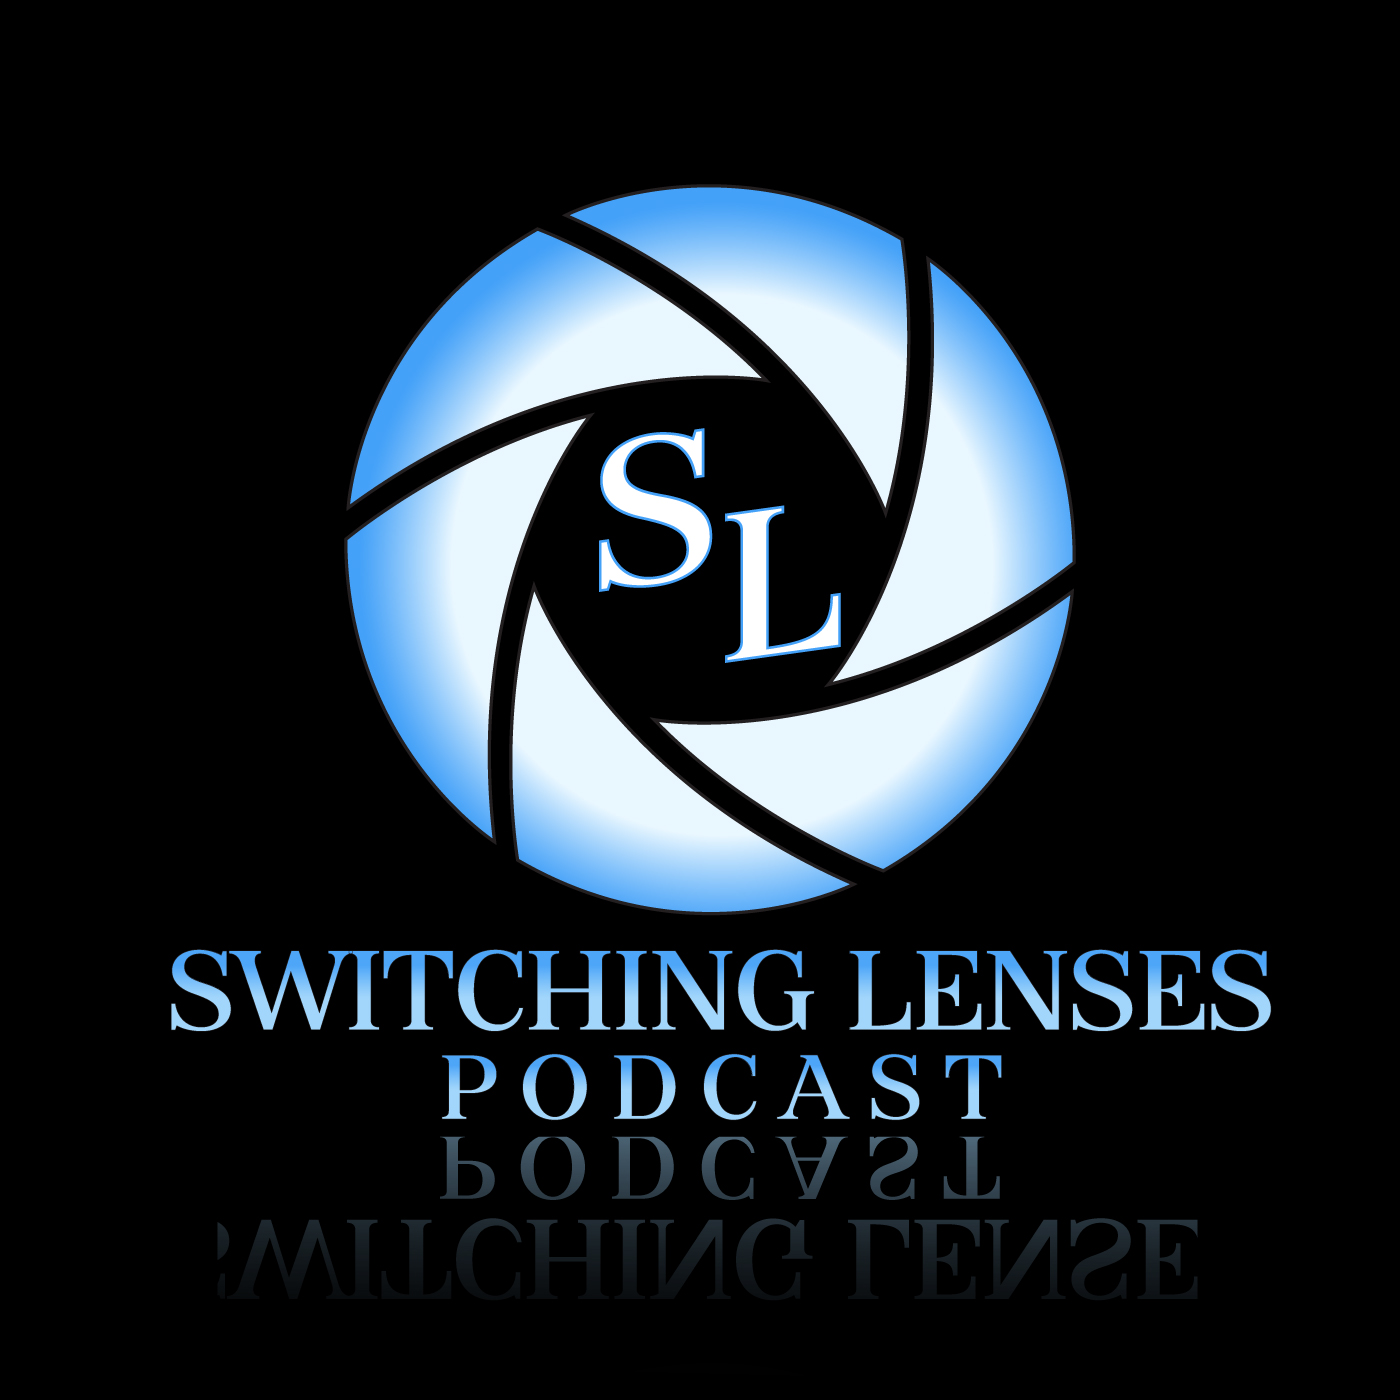 Switching Lenses